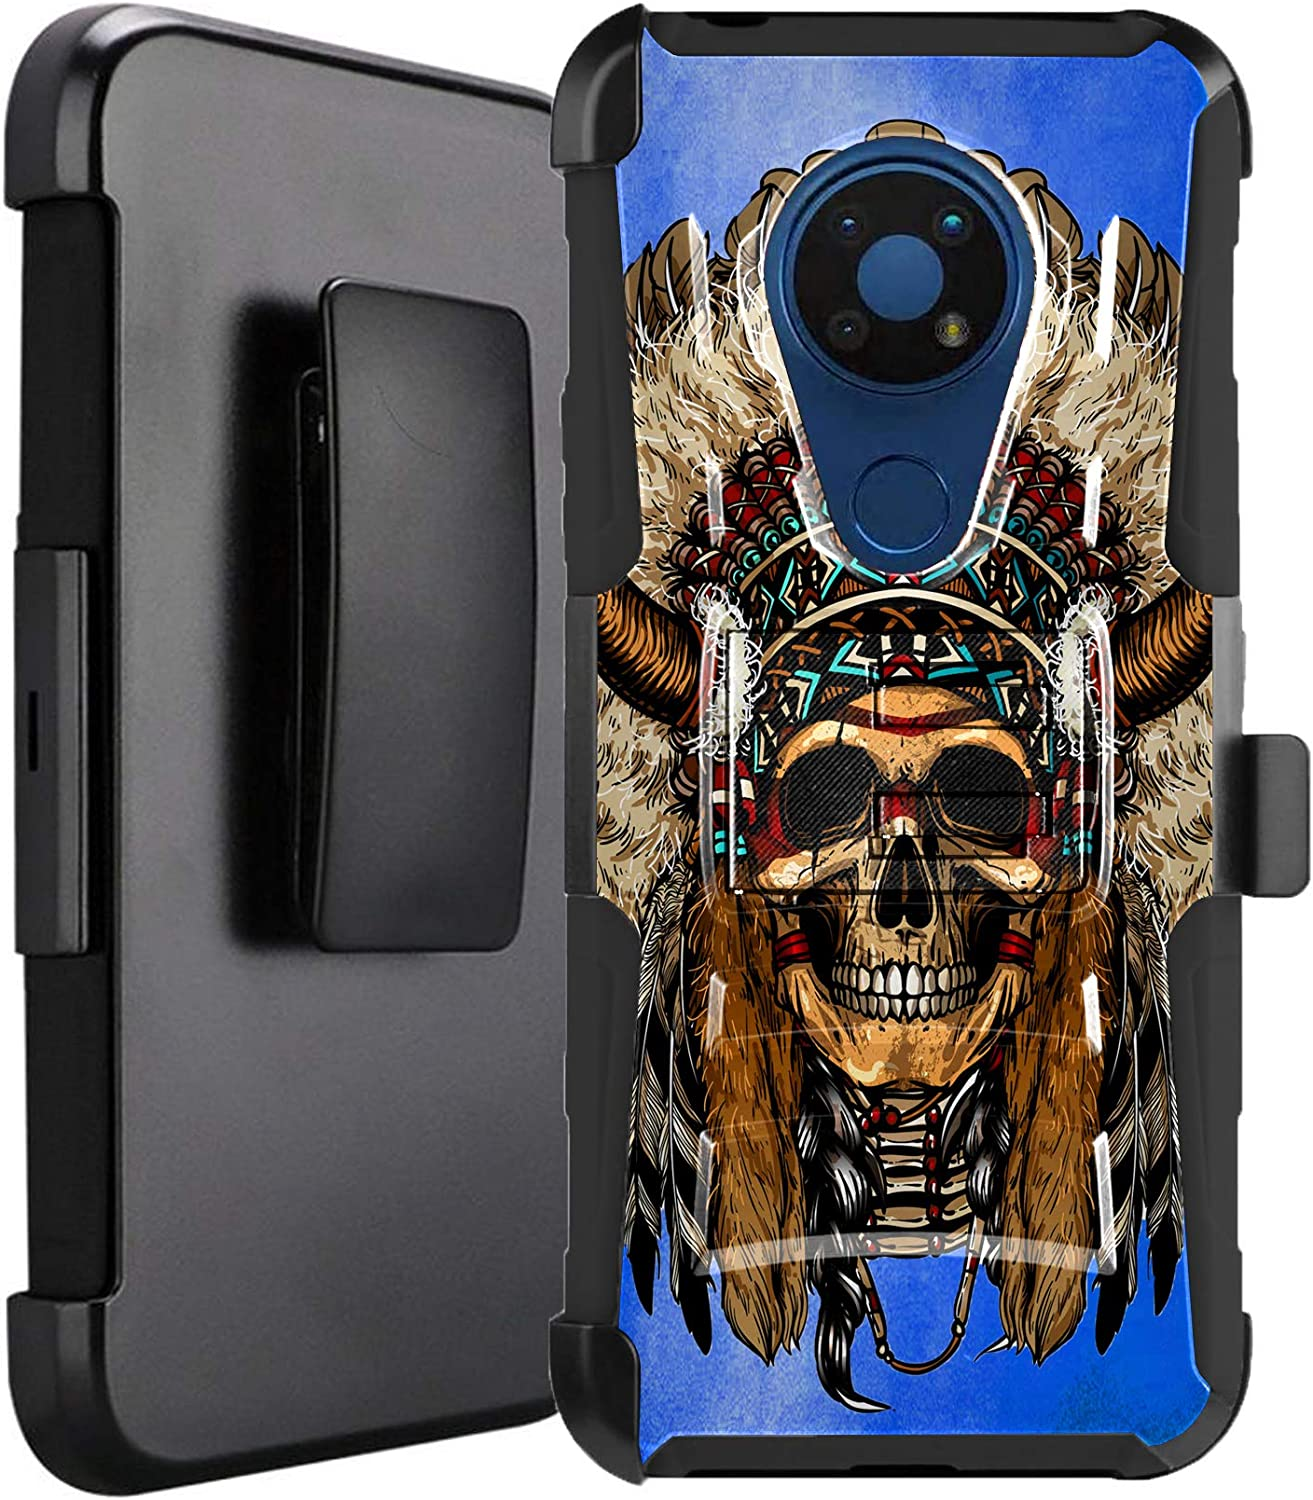 DALUX Hybrid Kickstand Holster Phone Case Compatible with Nokia C5 Endi - Cherokee Chief Skull